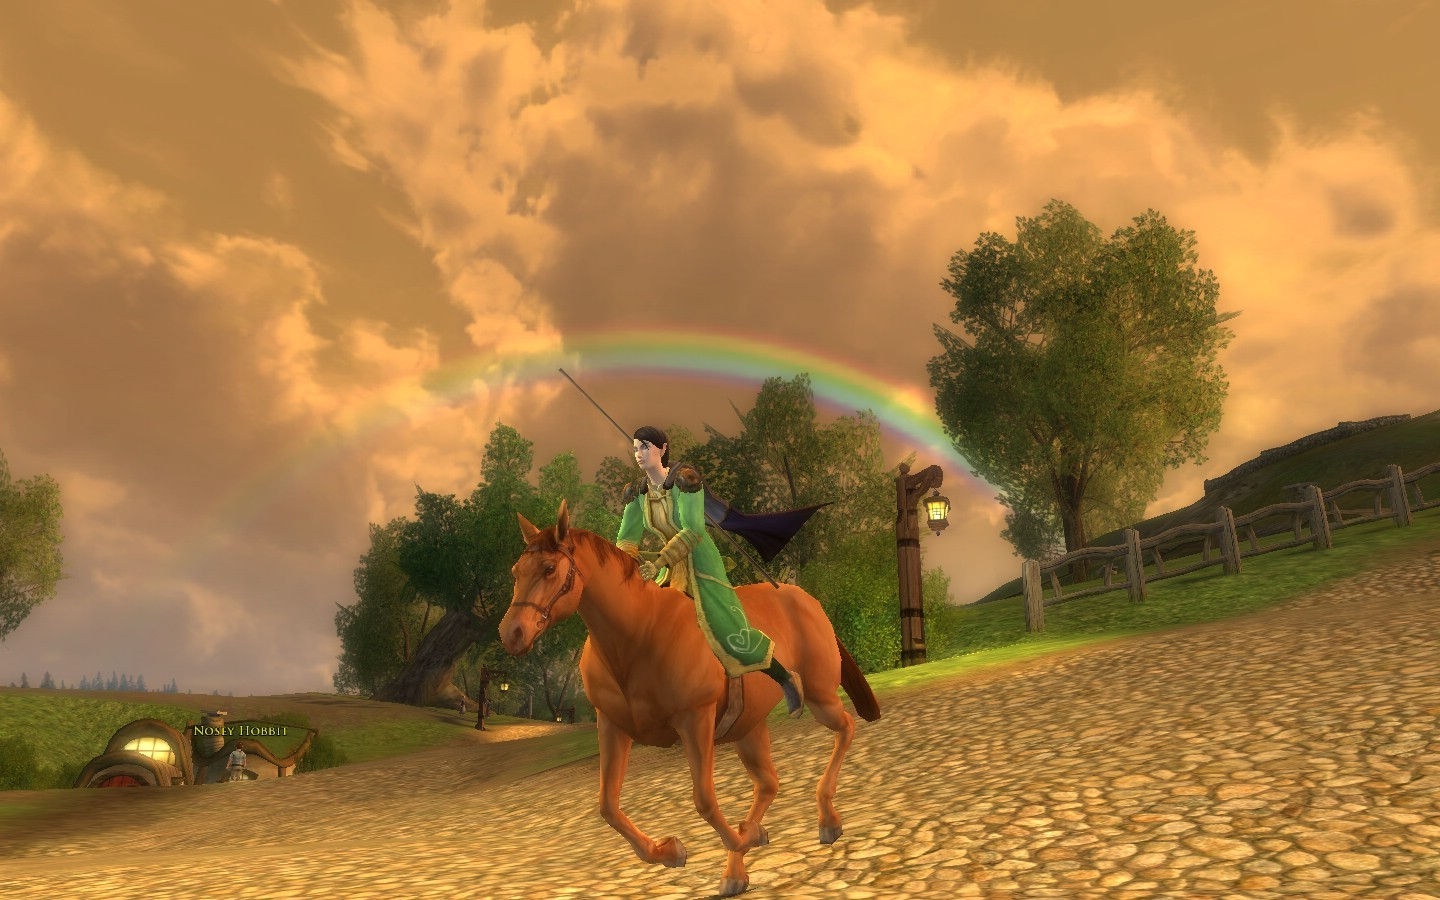 Lord of the Rings Online - A Giant Leprecaun riding a horse